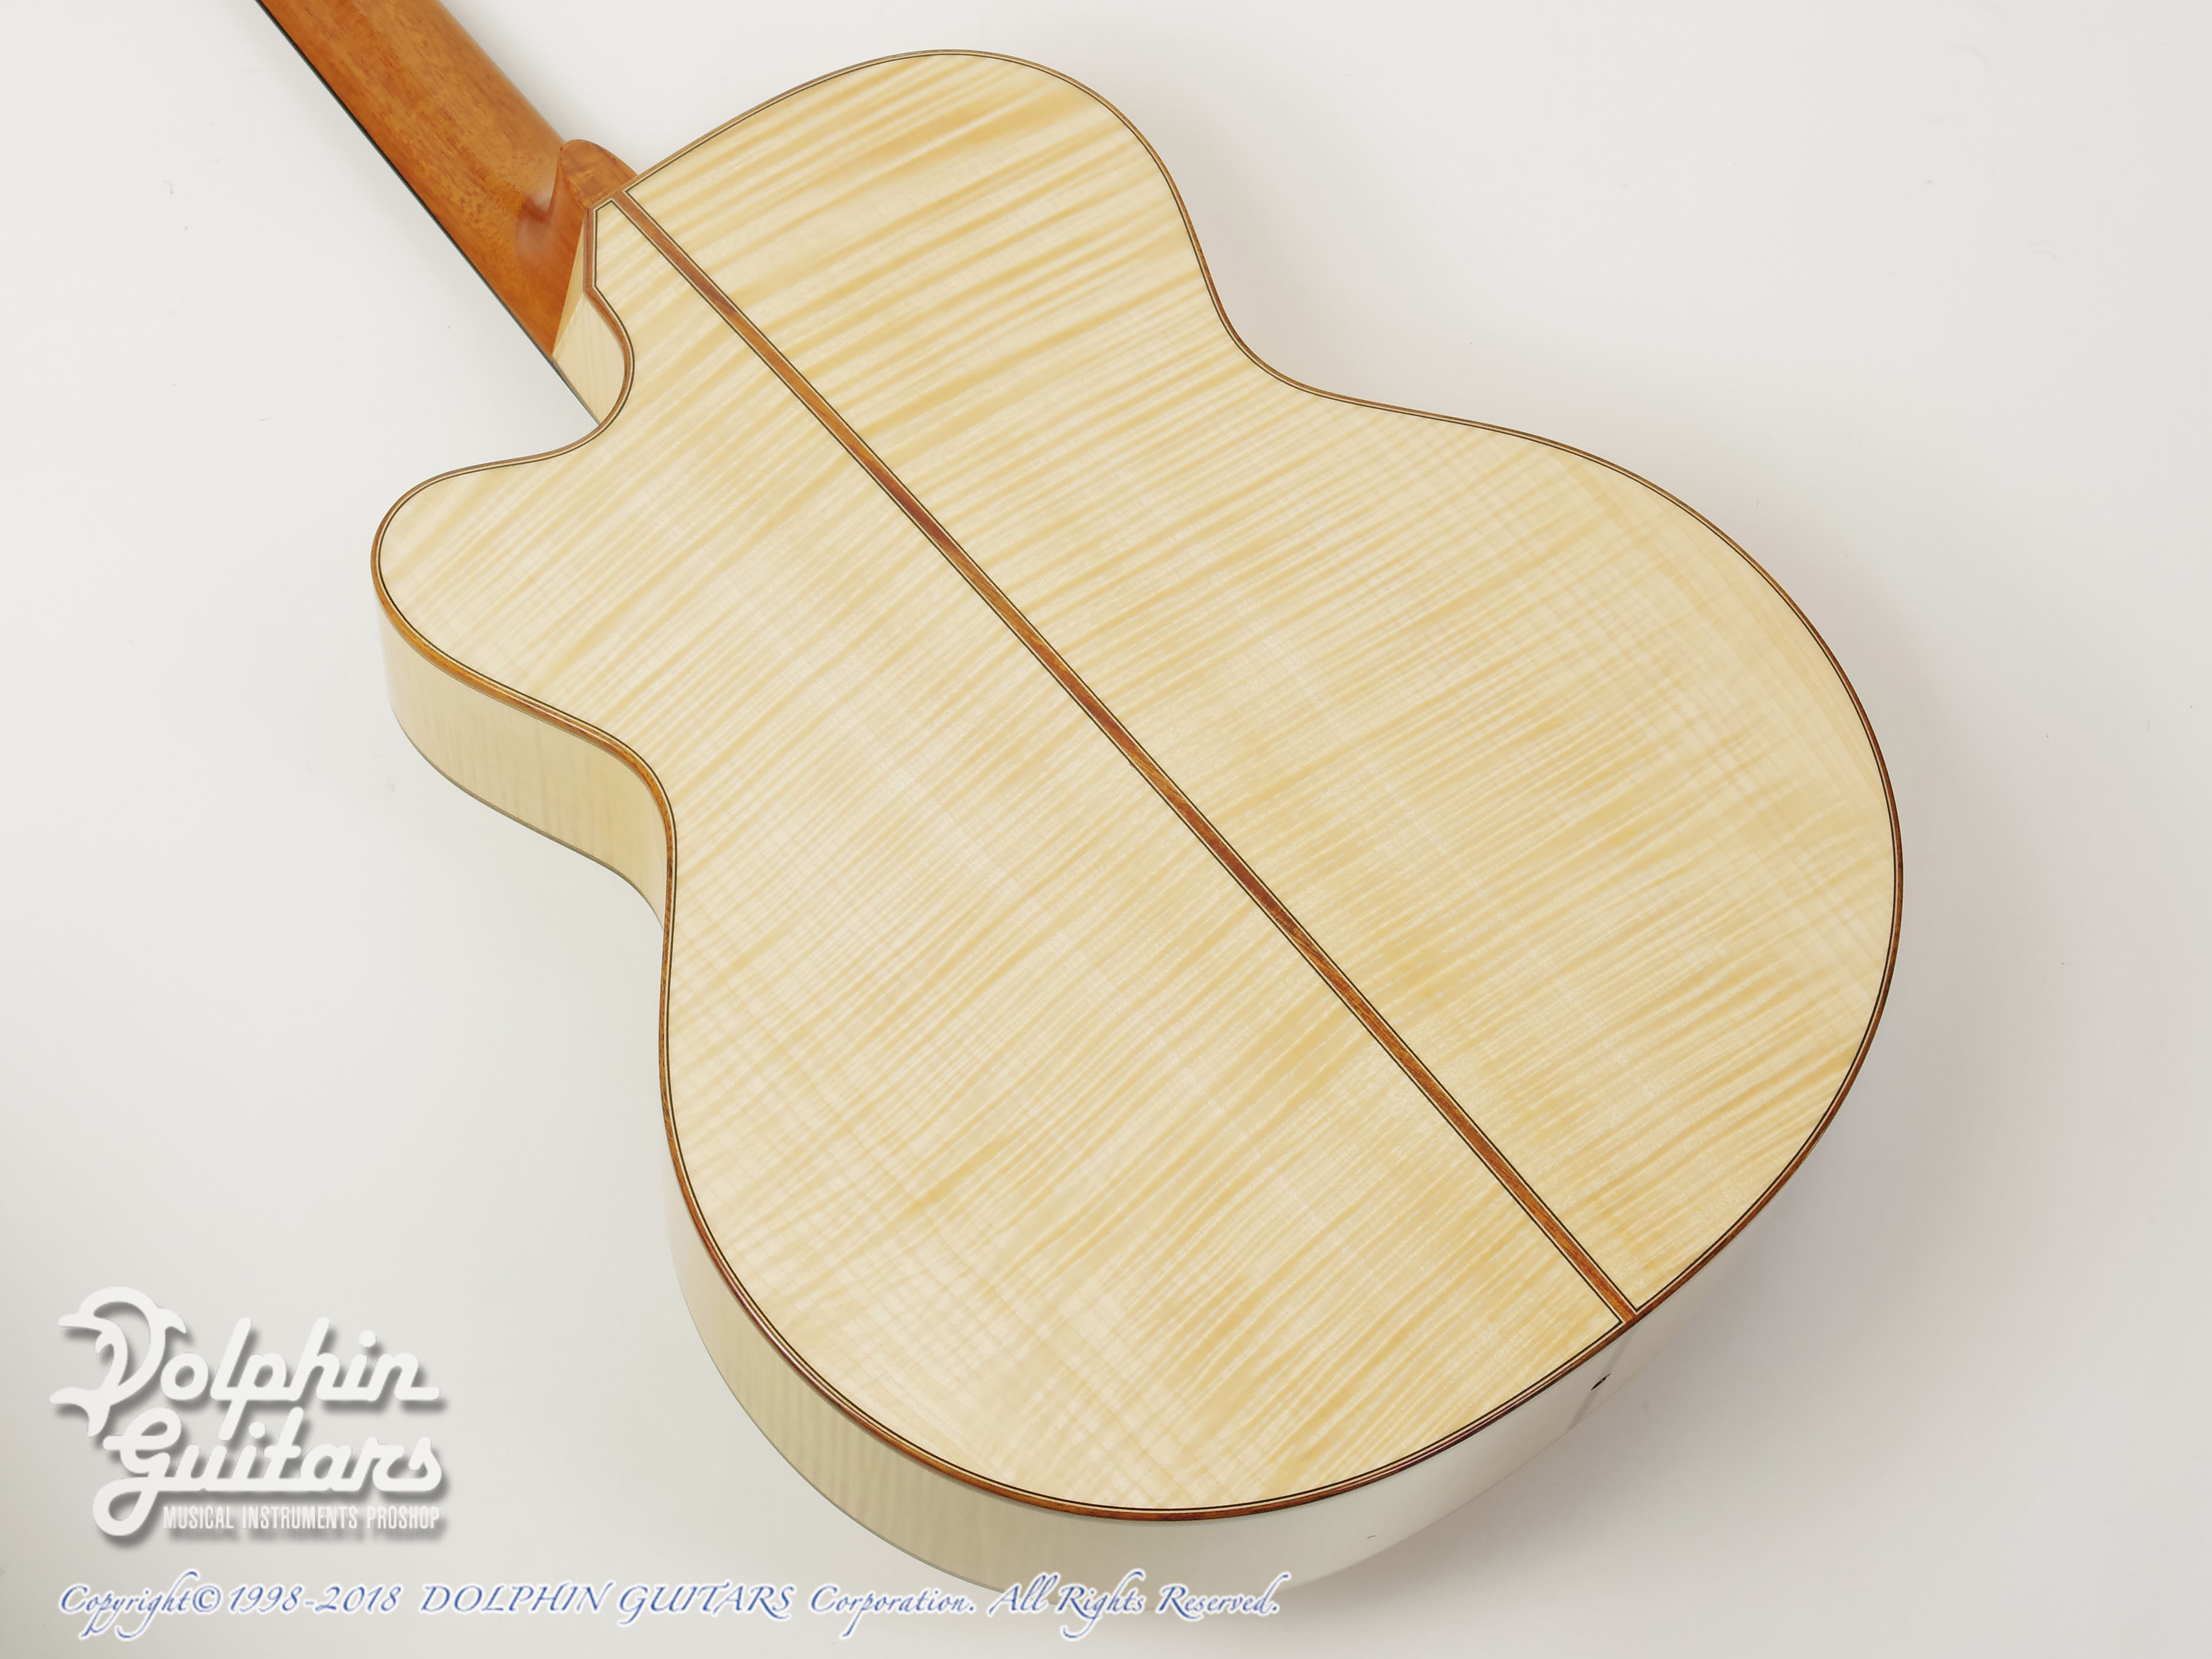 ASTURIAS: Grand Solo Premio Premio/S Maple LTD (Curly Maple) (3)